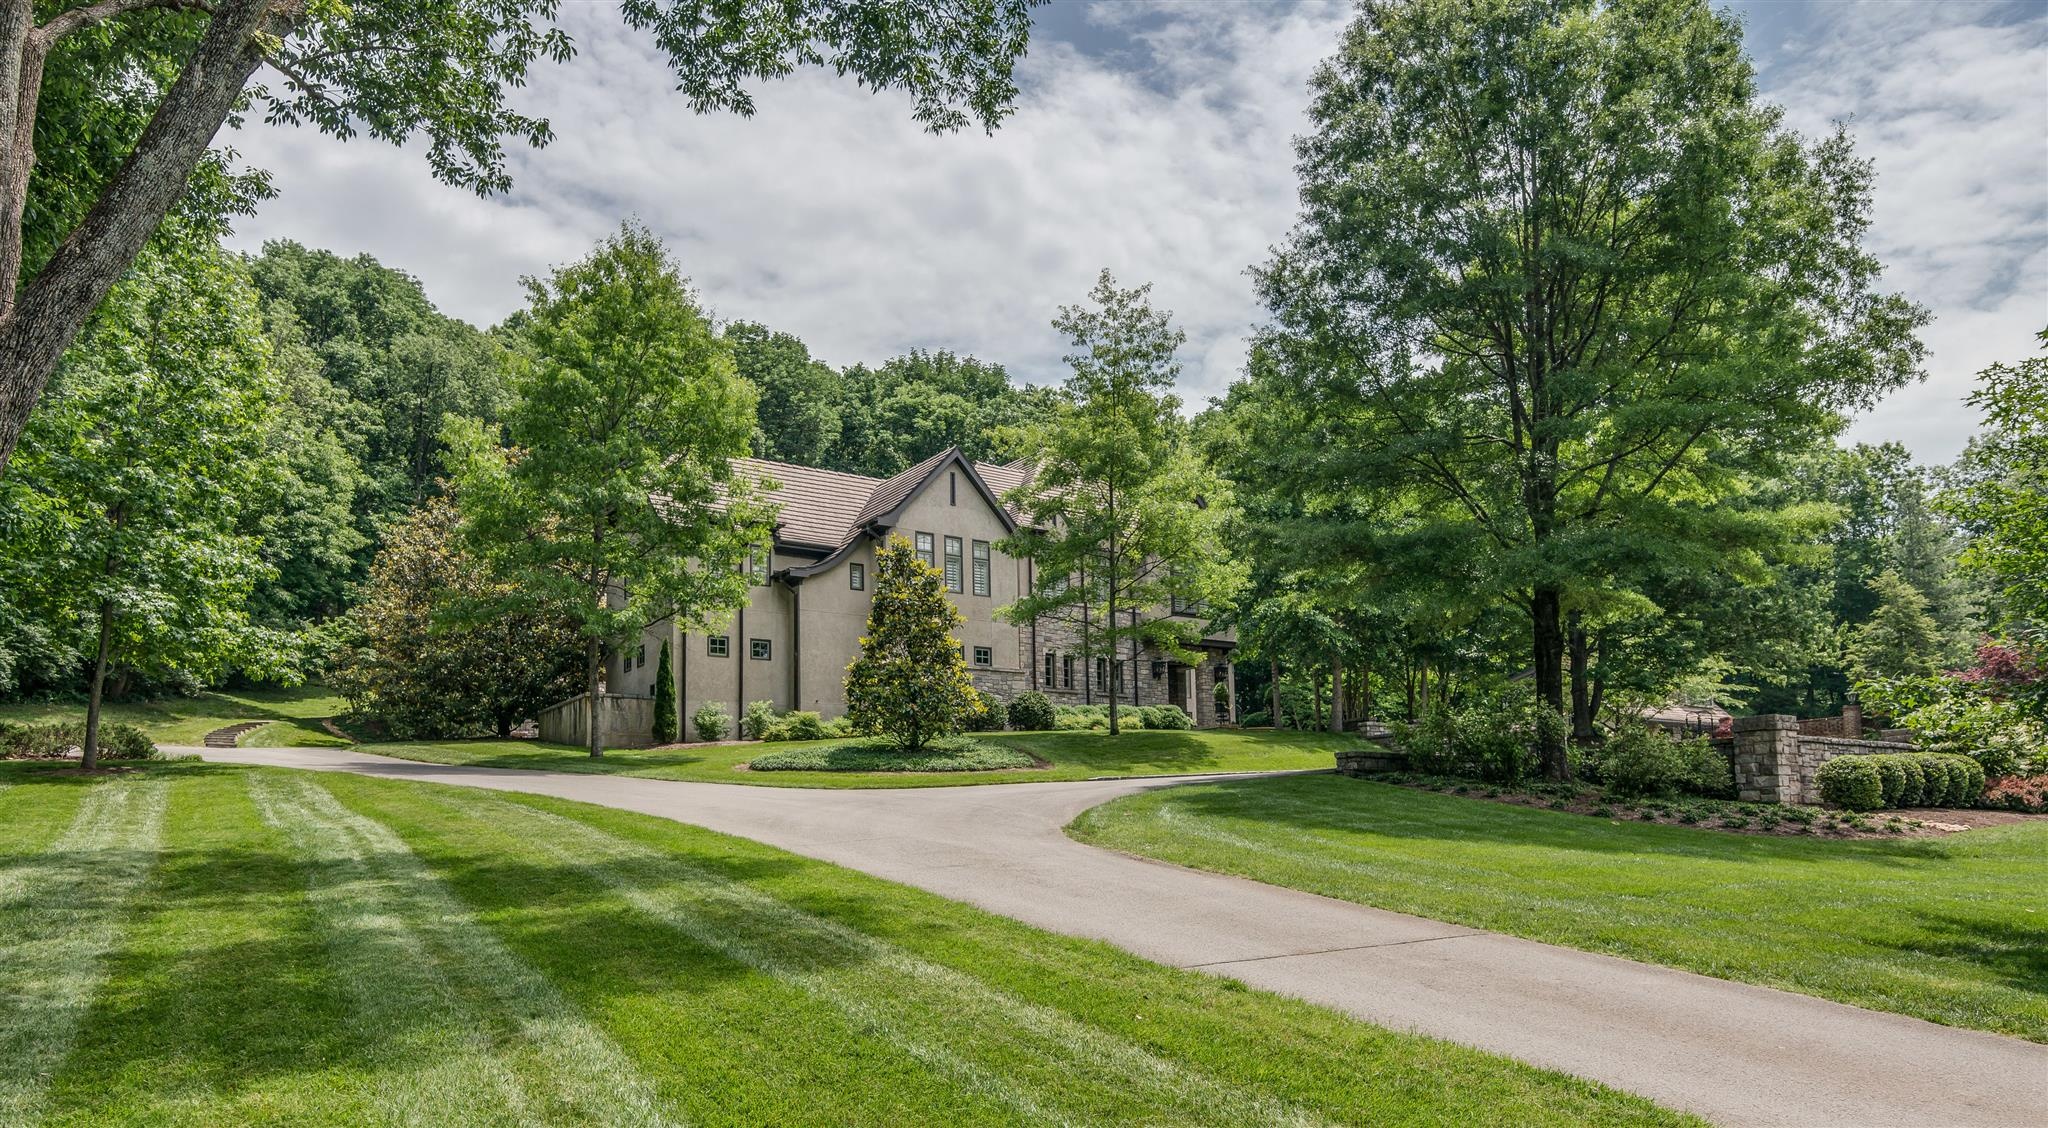 Unfussy, friendly and pure quality fun family home! Attention to thoughtful details throughout main & guest/pool house. Heated saline pool, screened porch w/ fireplace, park-like setting.